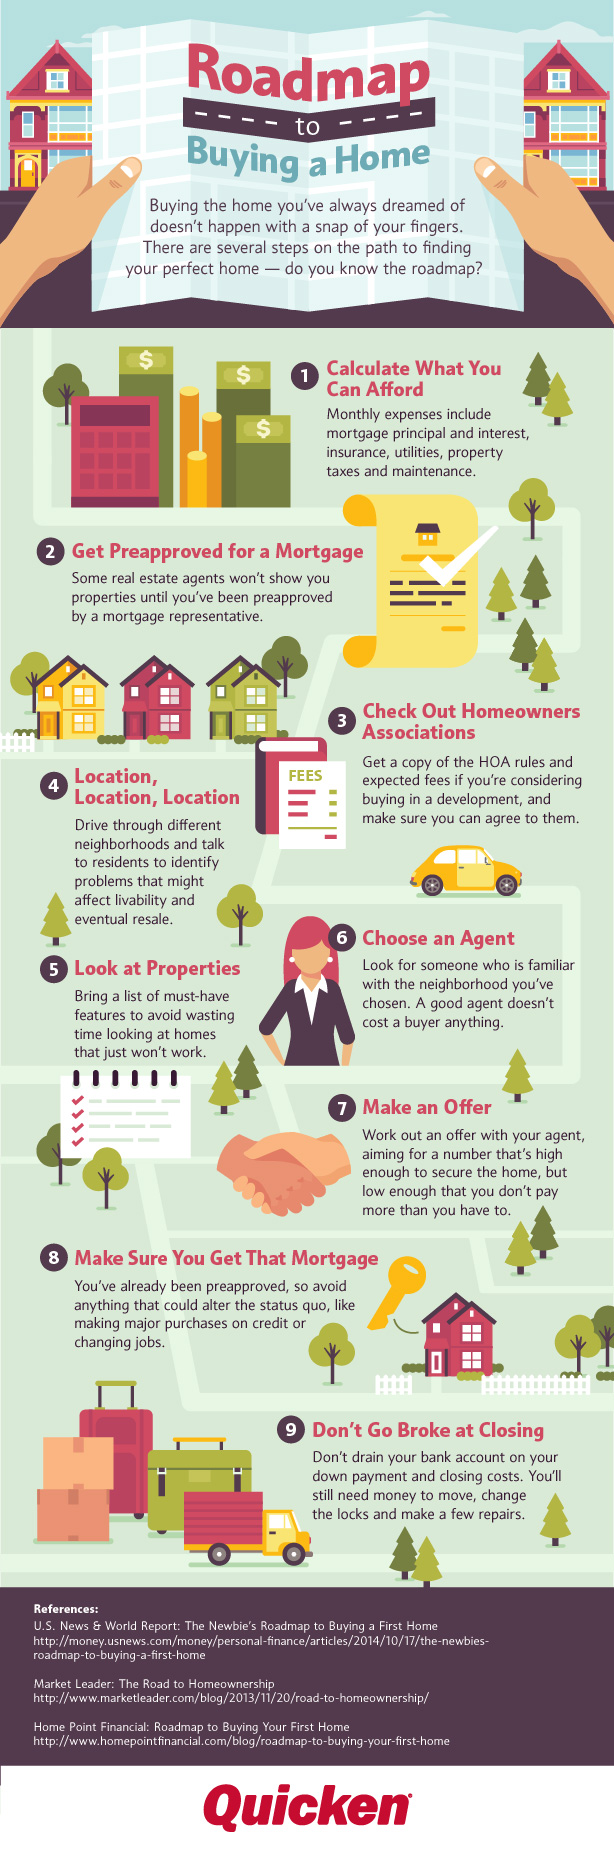 Roadmap to Buying a Home [Infographic]